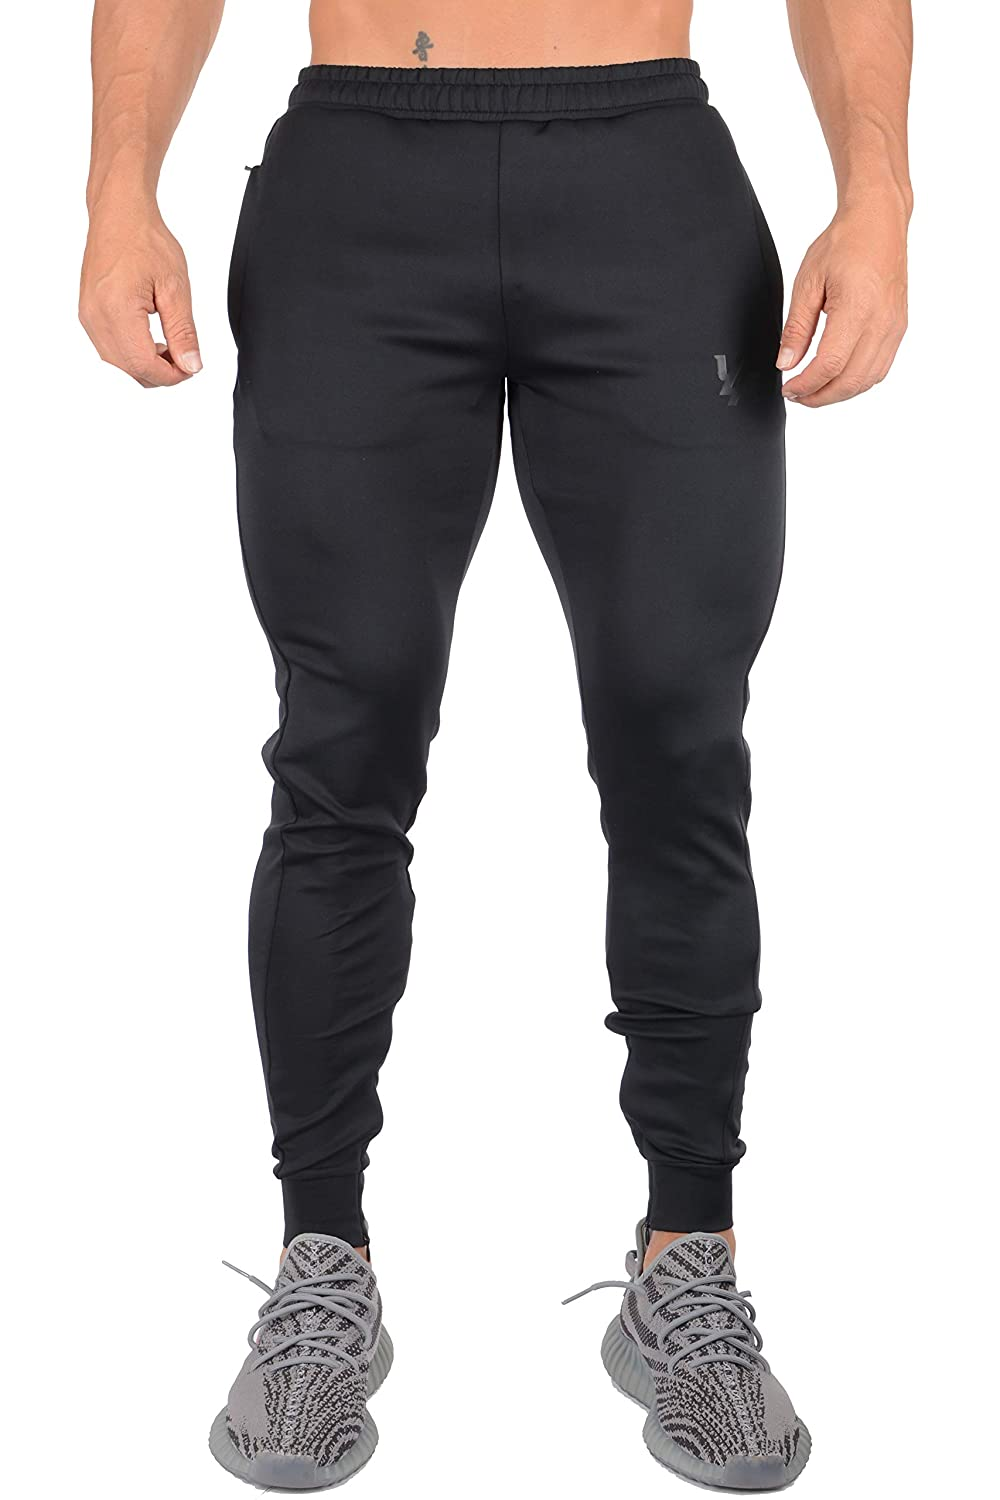 89d55a5c6fb84 Amazon.com  YoungLA Athletic Track Pants for Men Joggers Slim Fit Workout  Gym Lounge 215  Clothing